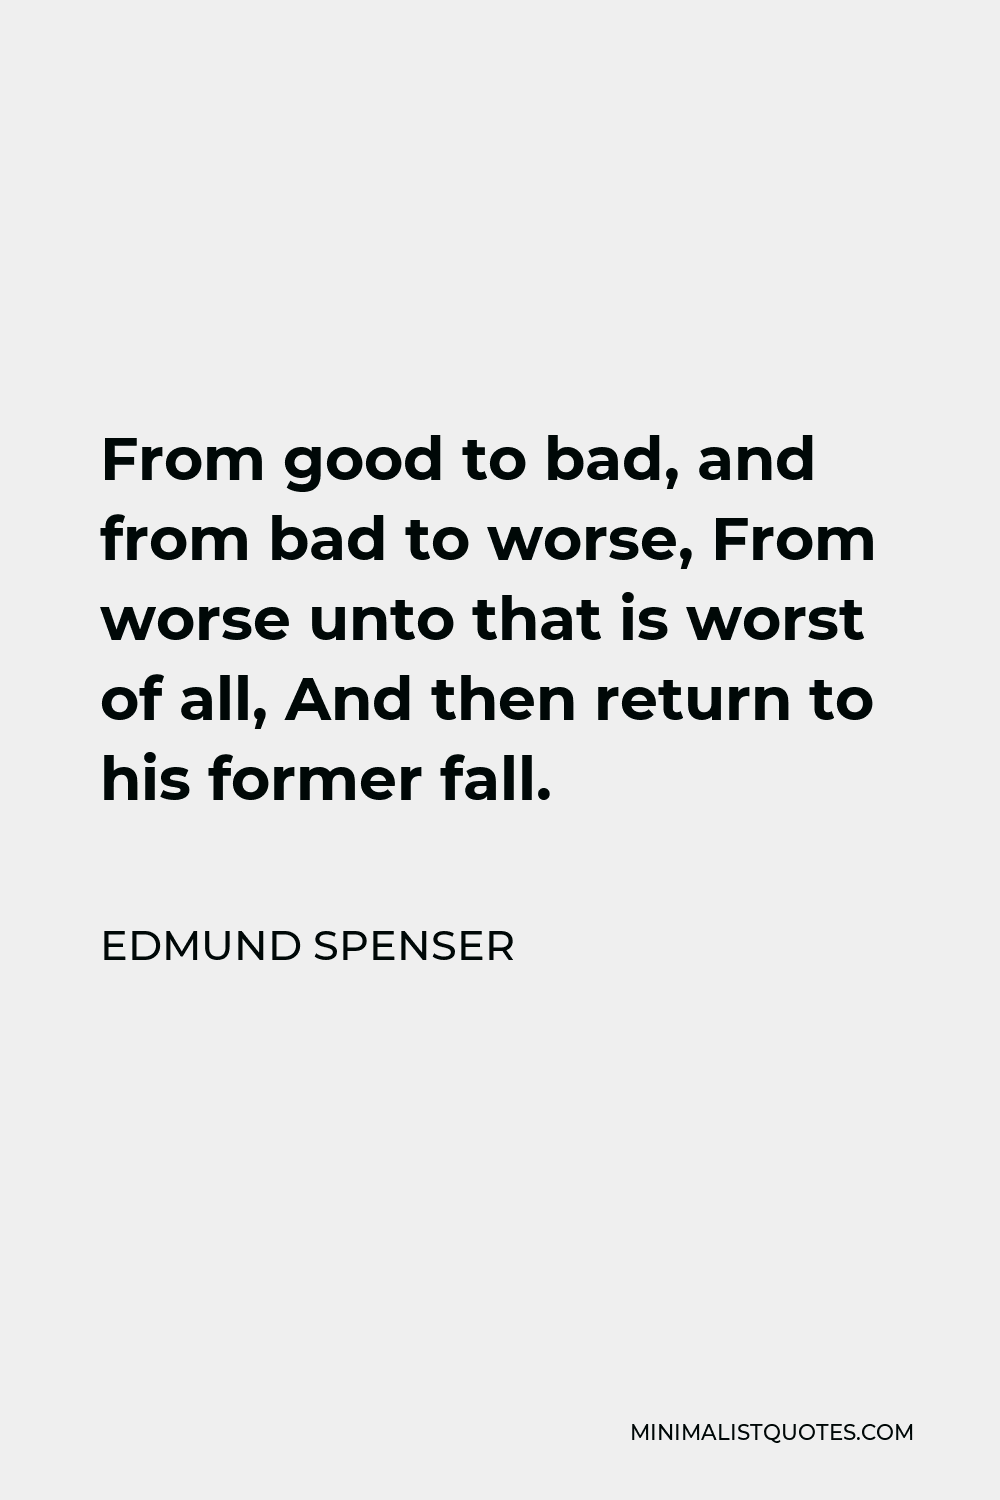 Edmund Spenser Quote - From good to bad, and from bad to worse, From worse unto that is worst of all, And then return to his former fall.